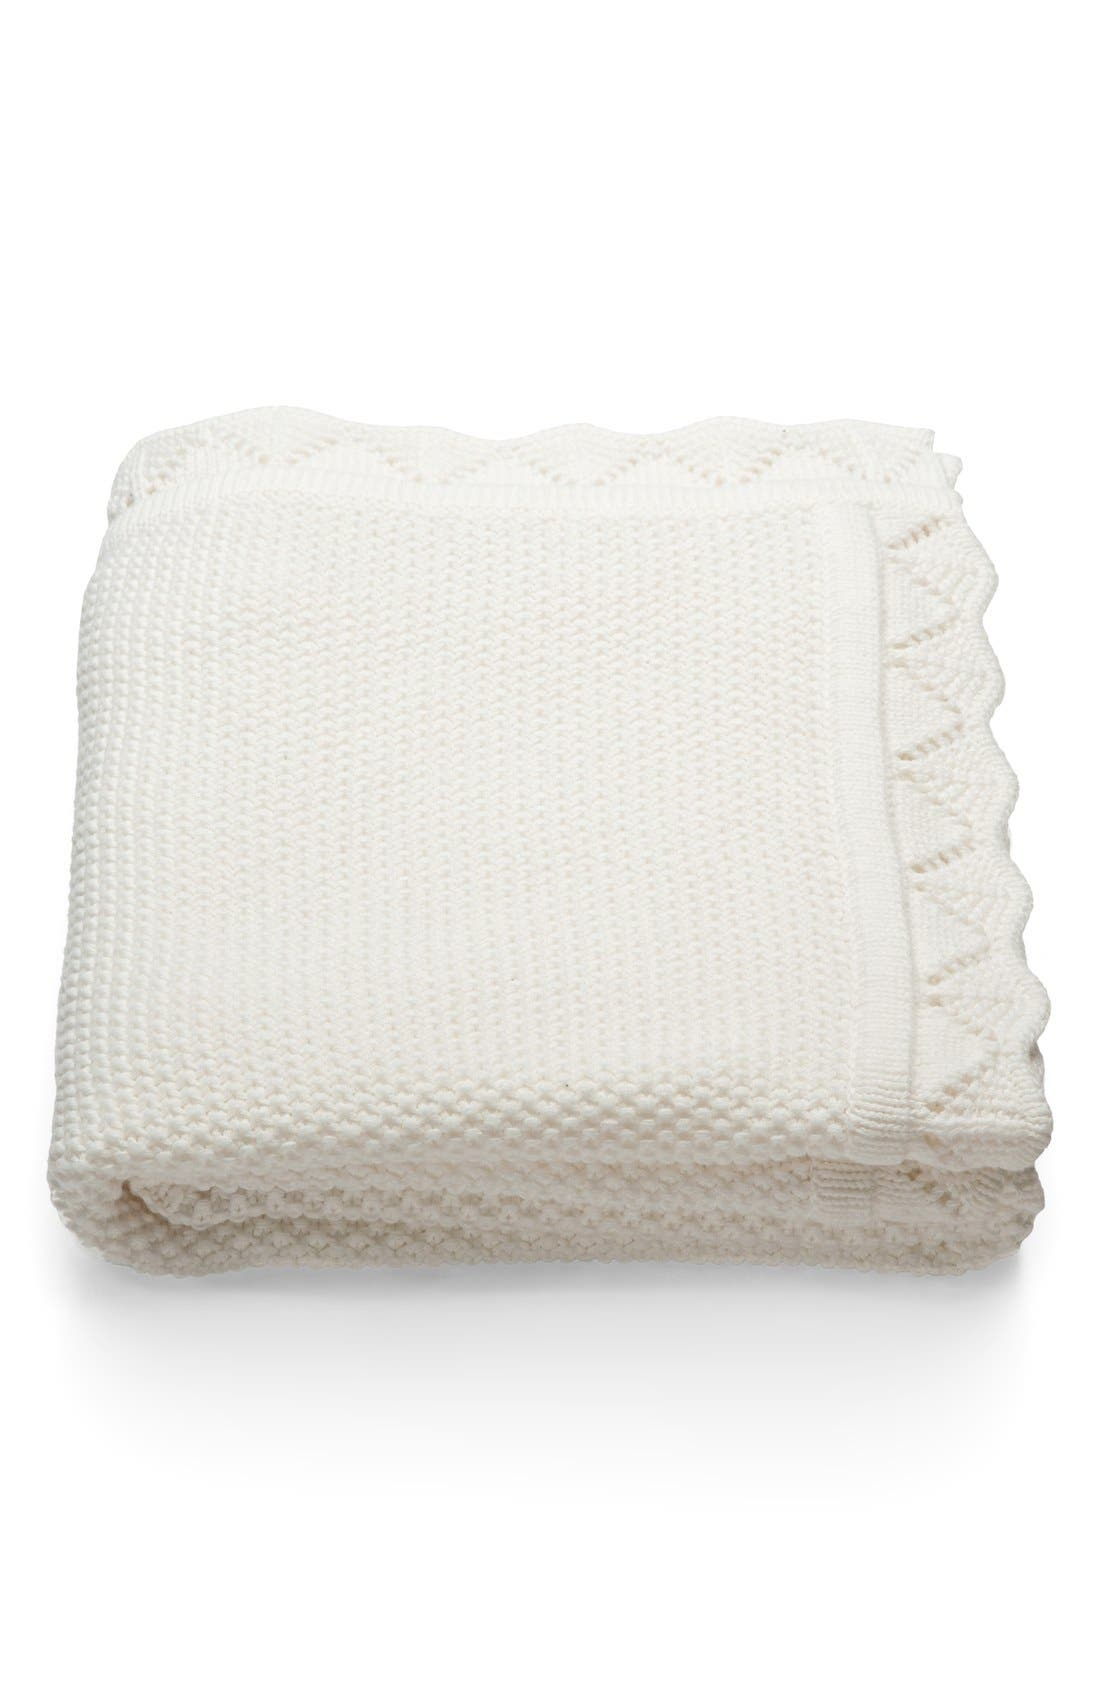 'Classic' Baby Blanket,                             Main thumbnail 1, color,                             WHITE